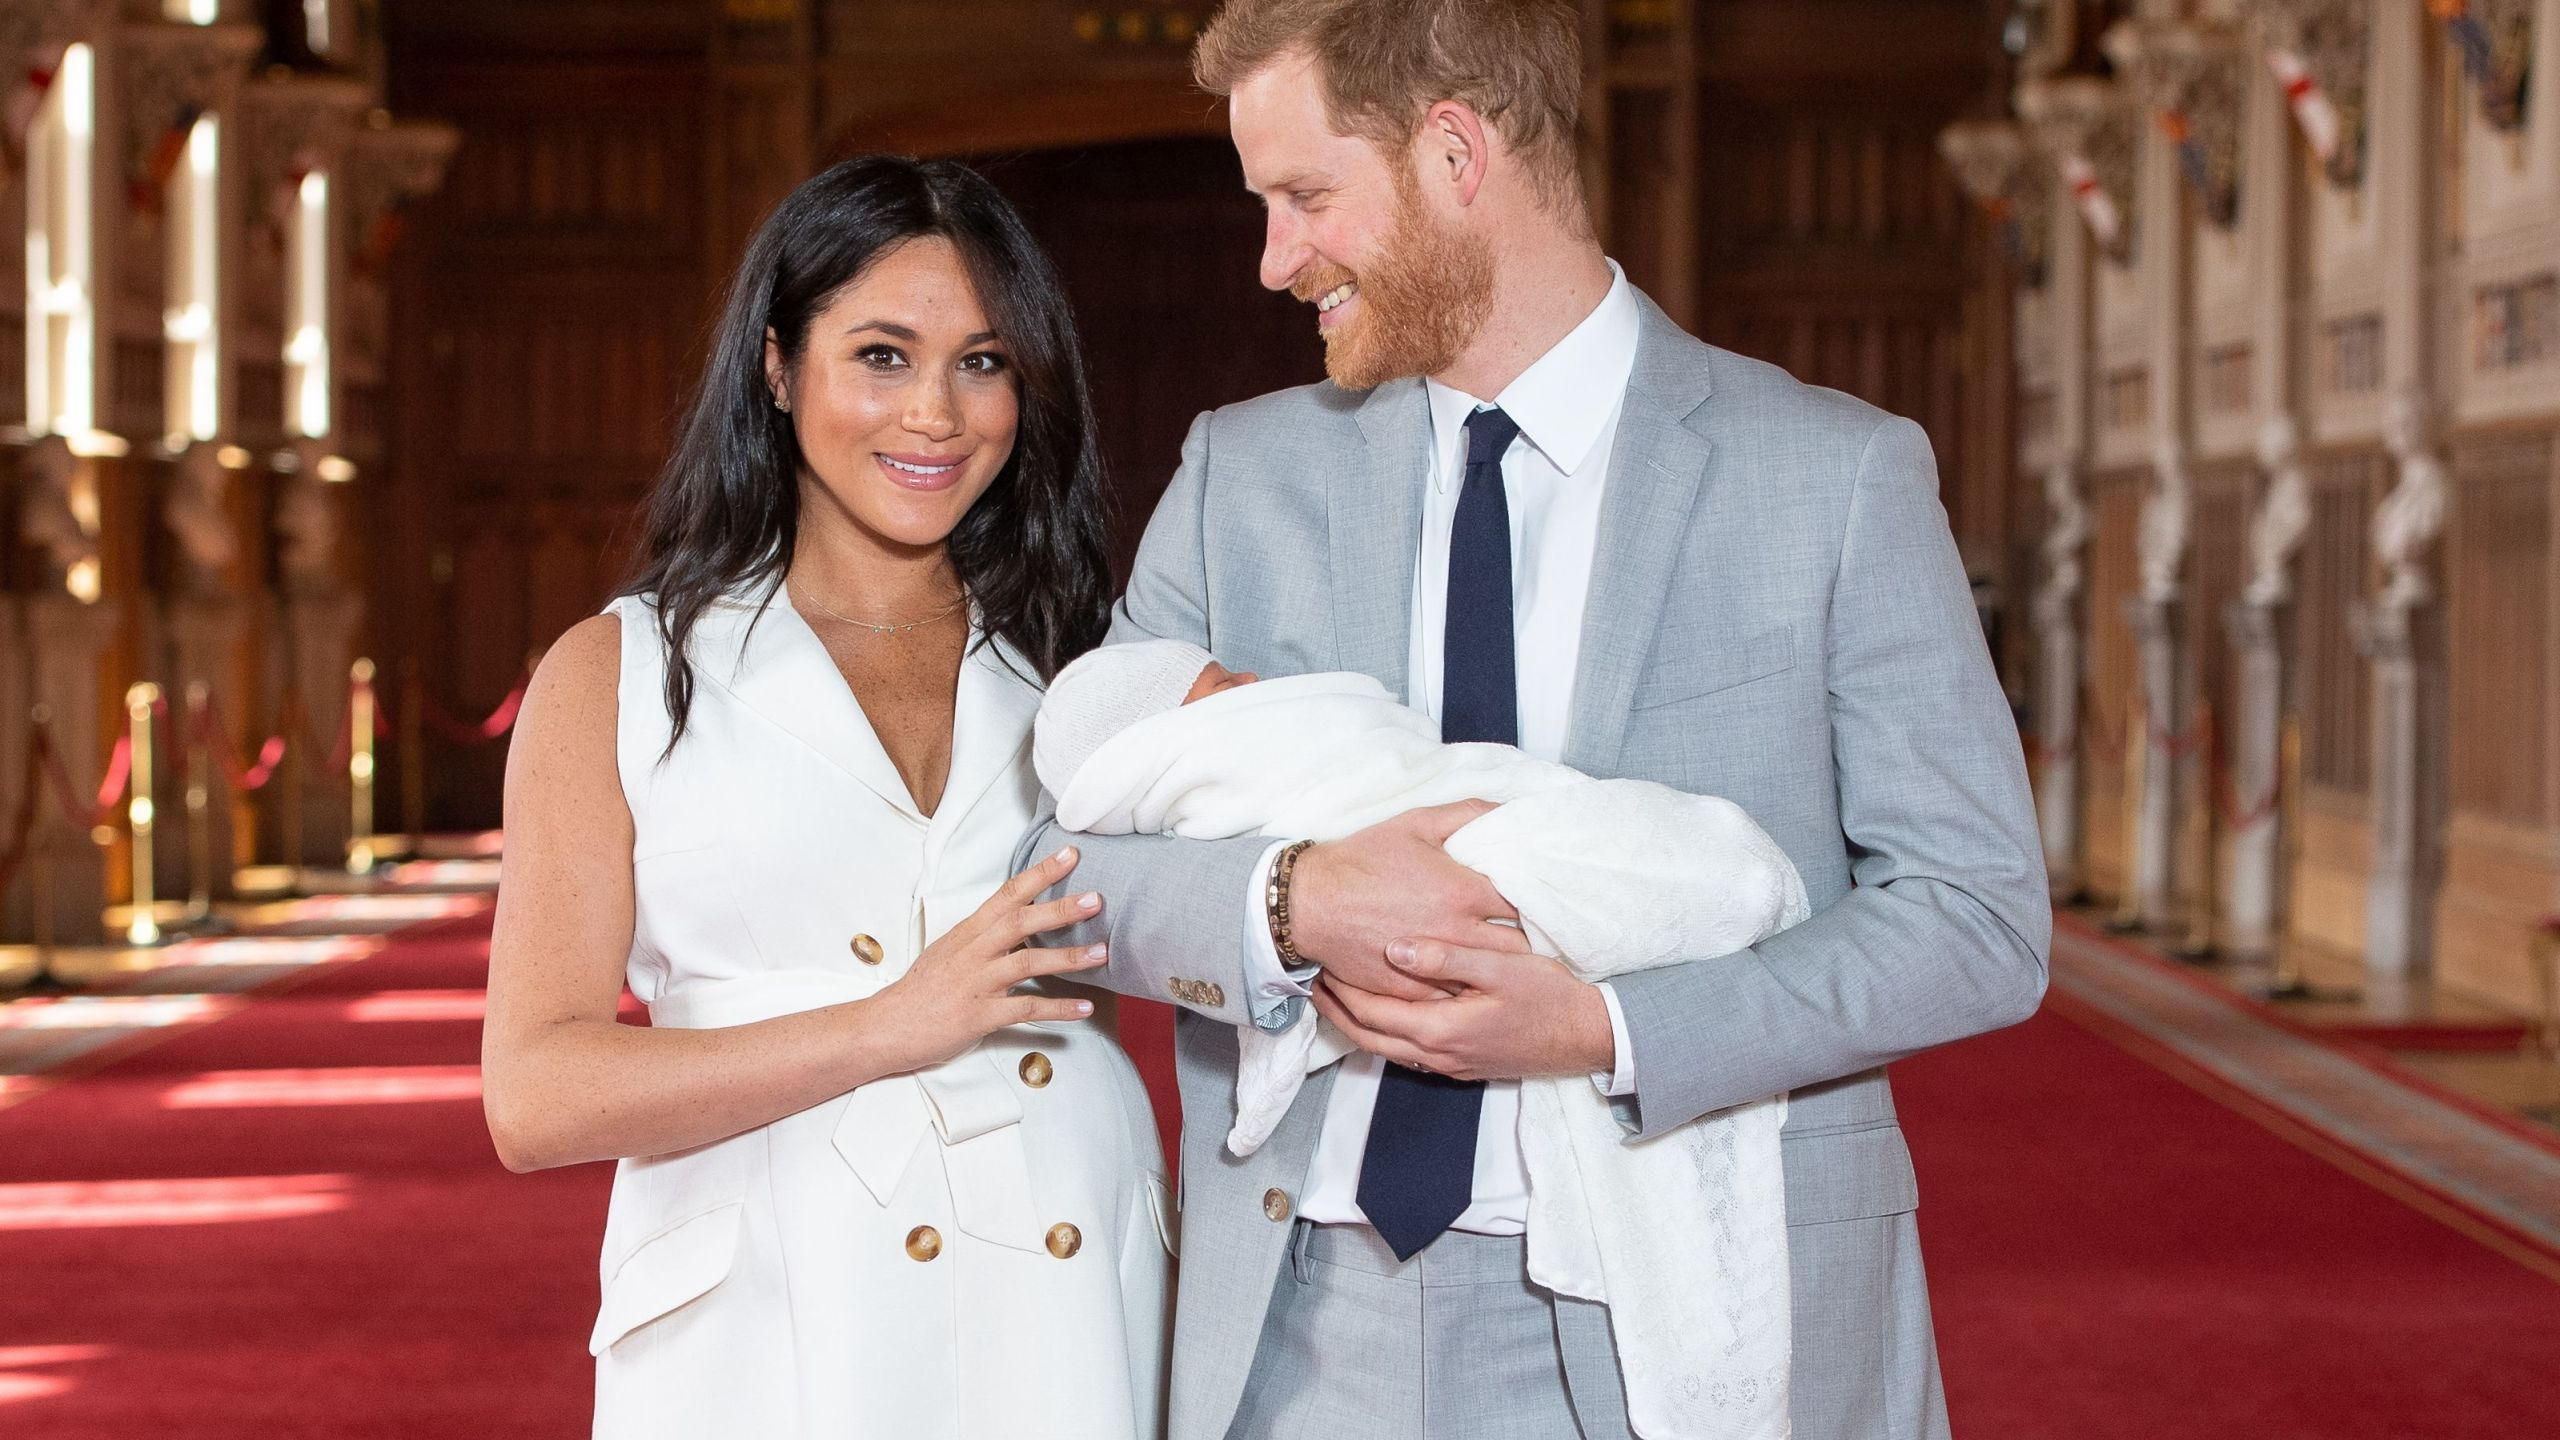 Britain's Prince Harry, Duke of Sussex (R), and his wife Meghan, Duchess of Sussex, pose for a photo with their newborn baby son in St George's Hall at Windsor Castle in Windsor, west of London on May 8, 2019. (Credit: DOMINIC LIPINSKI/AFP/Getty Images)